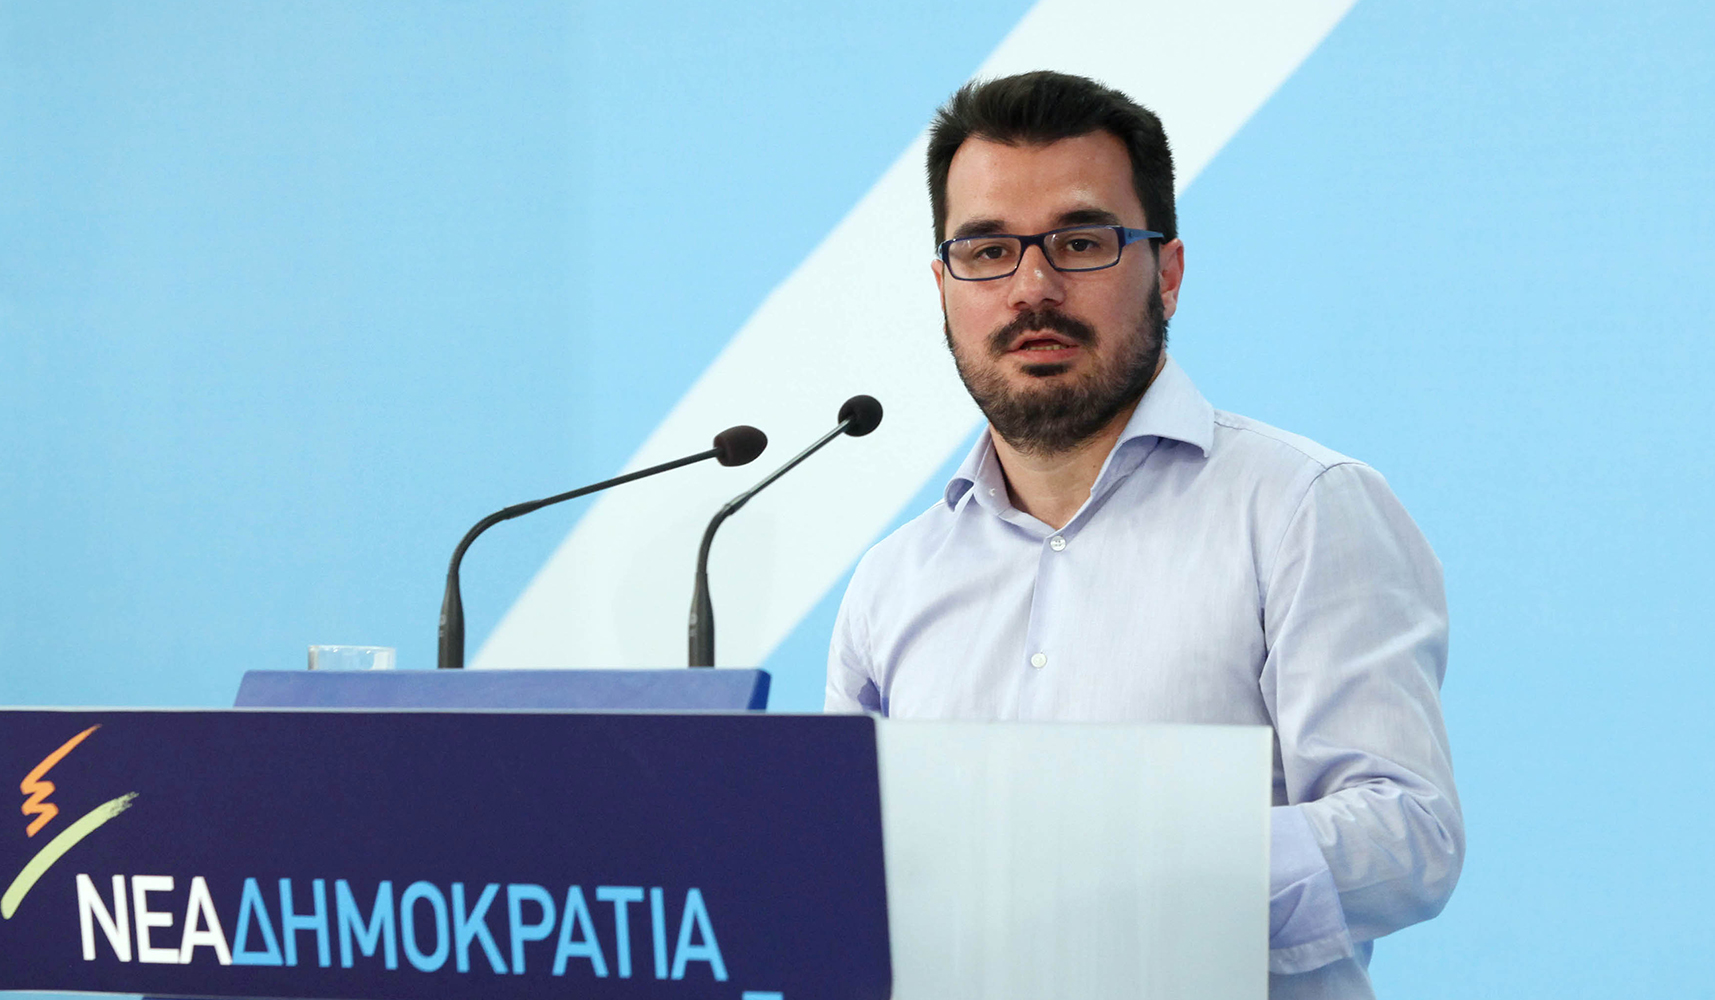 Papamimikos: I was not accommodating to those who wanted total control